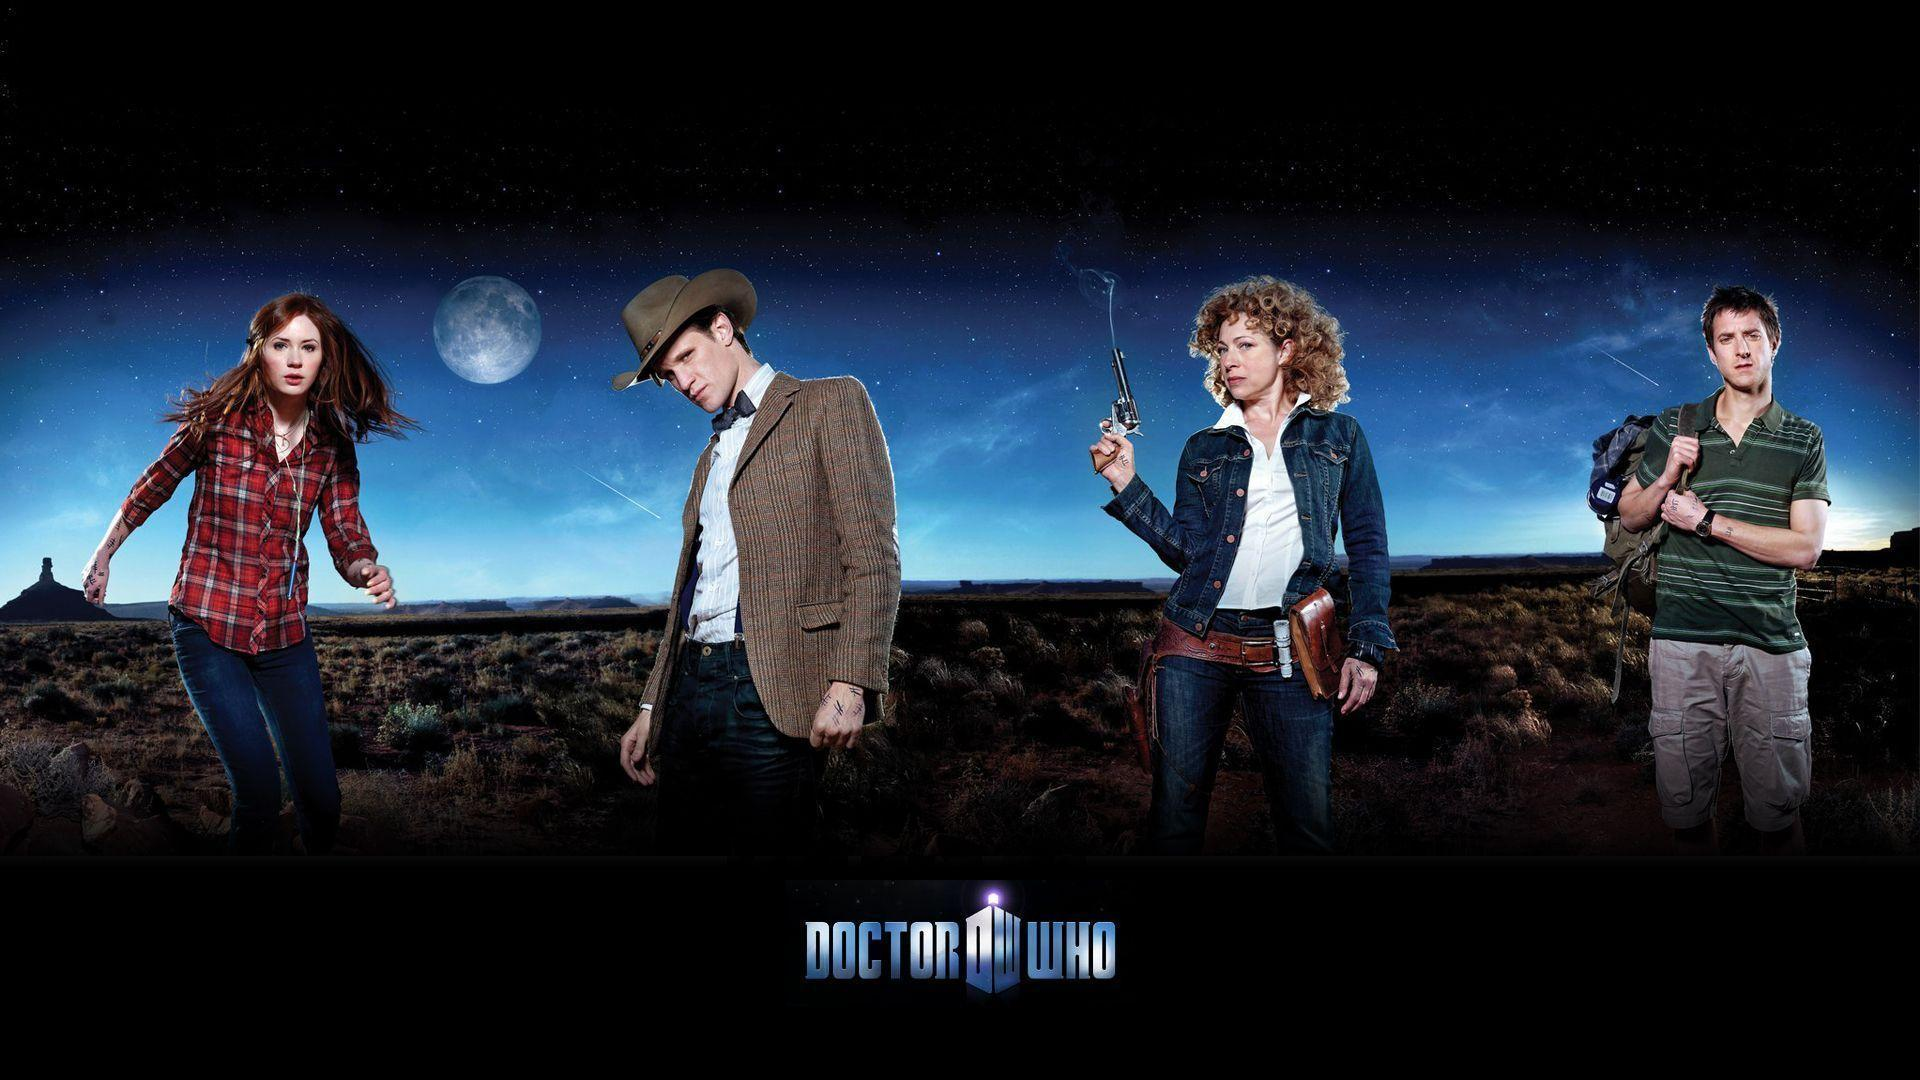 Doctor Who HD Picture Wallpaper.jpgDoctor Who HD Picture Wallpapers